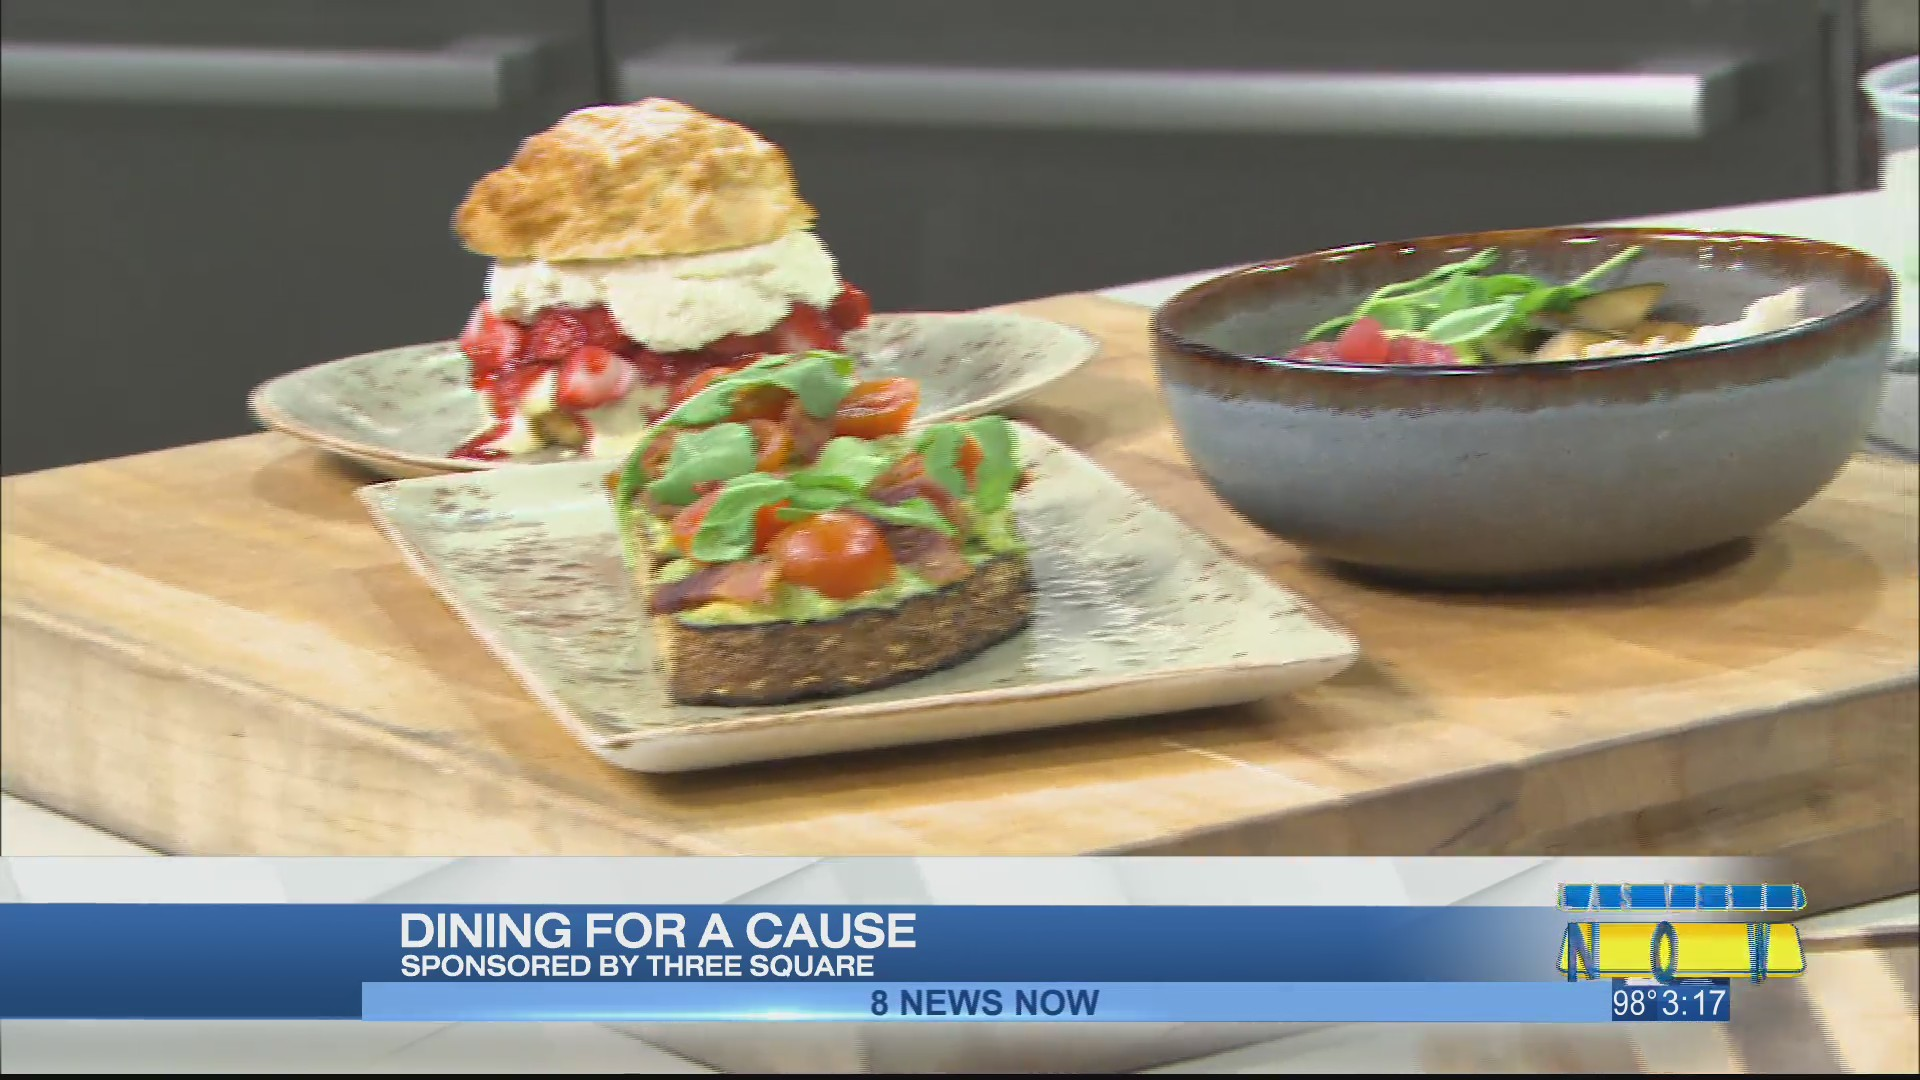 Dining for a cause to benefit Three Square